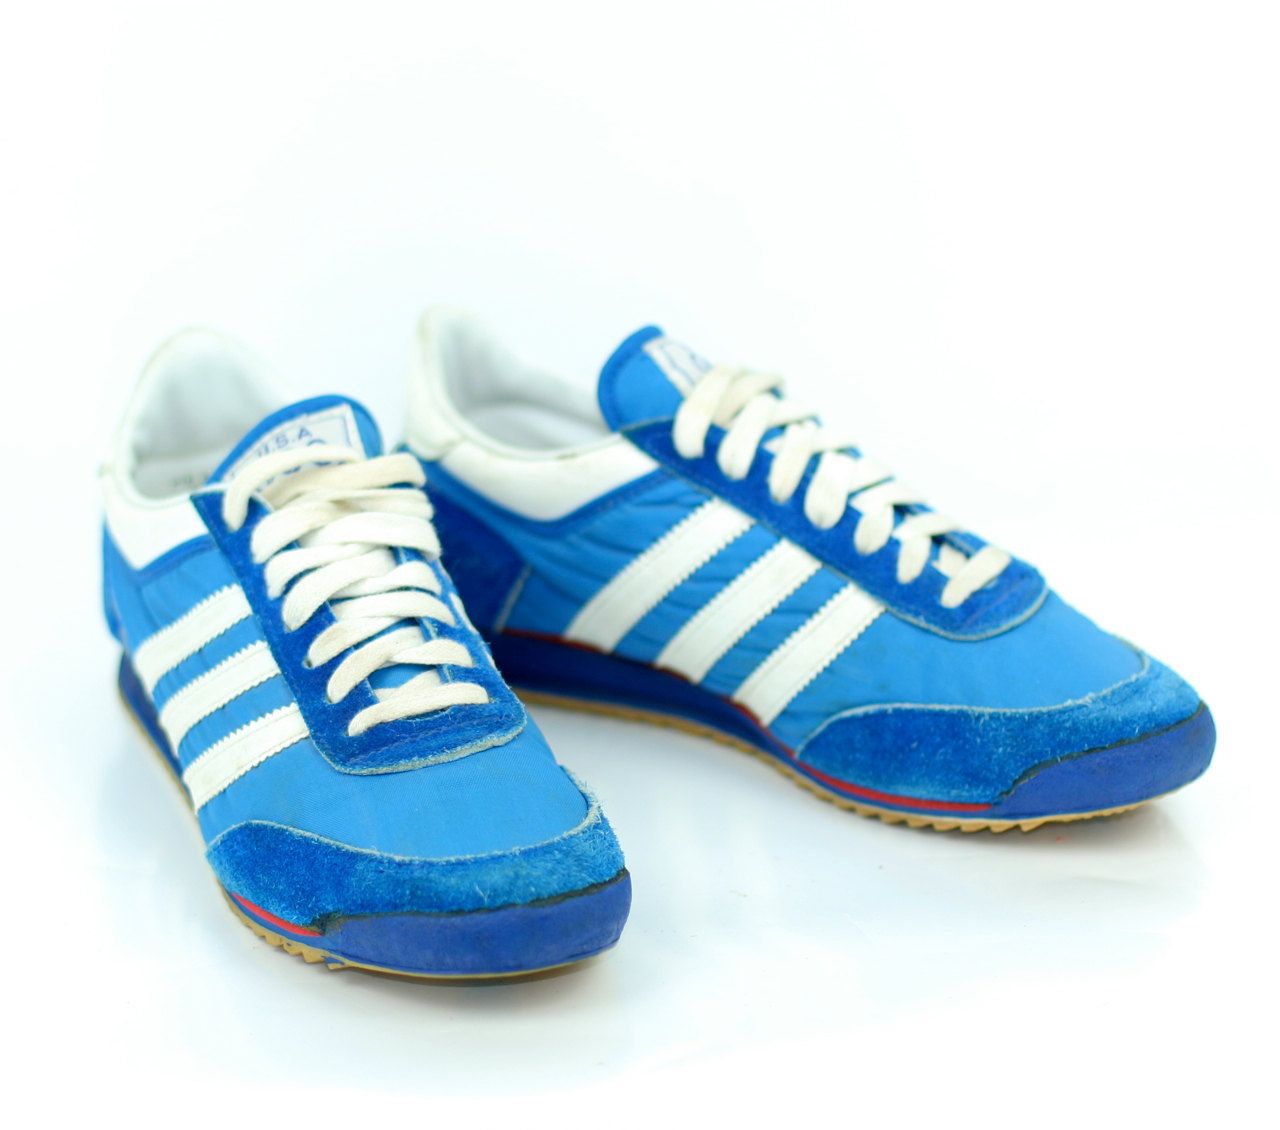 JCPenney 3 stripe adidas style sneakers